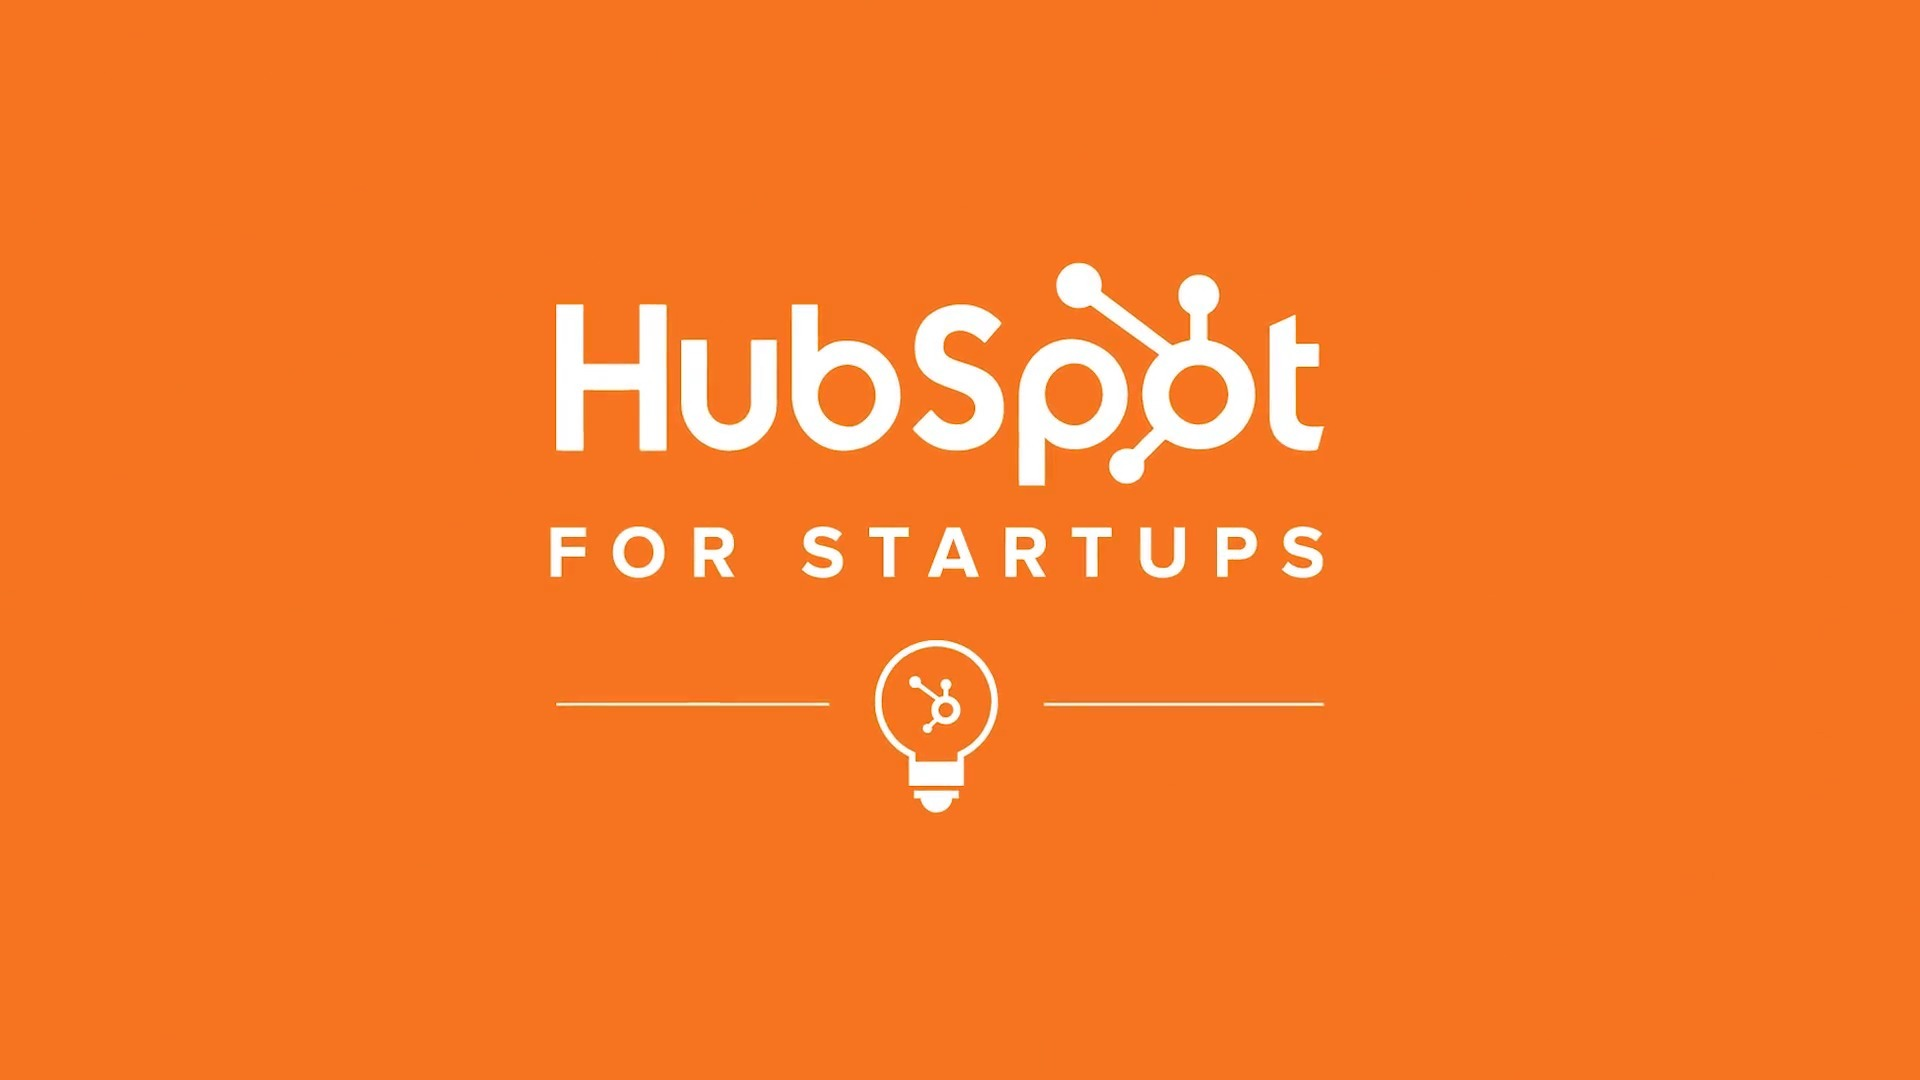 hubspot for startups.jpg